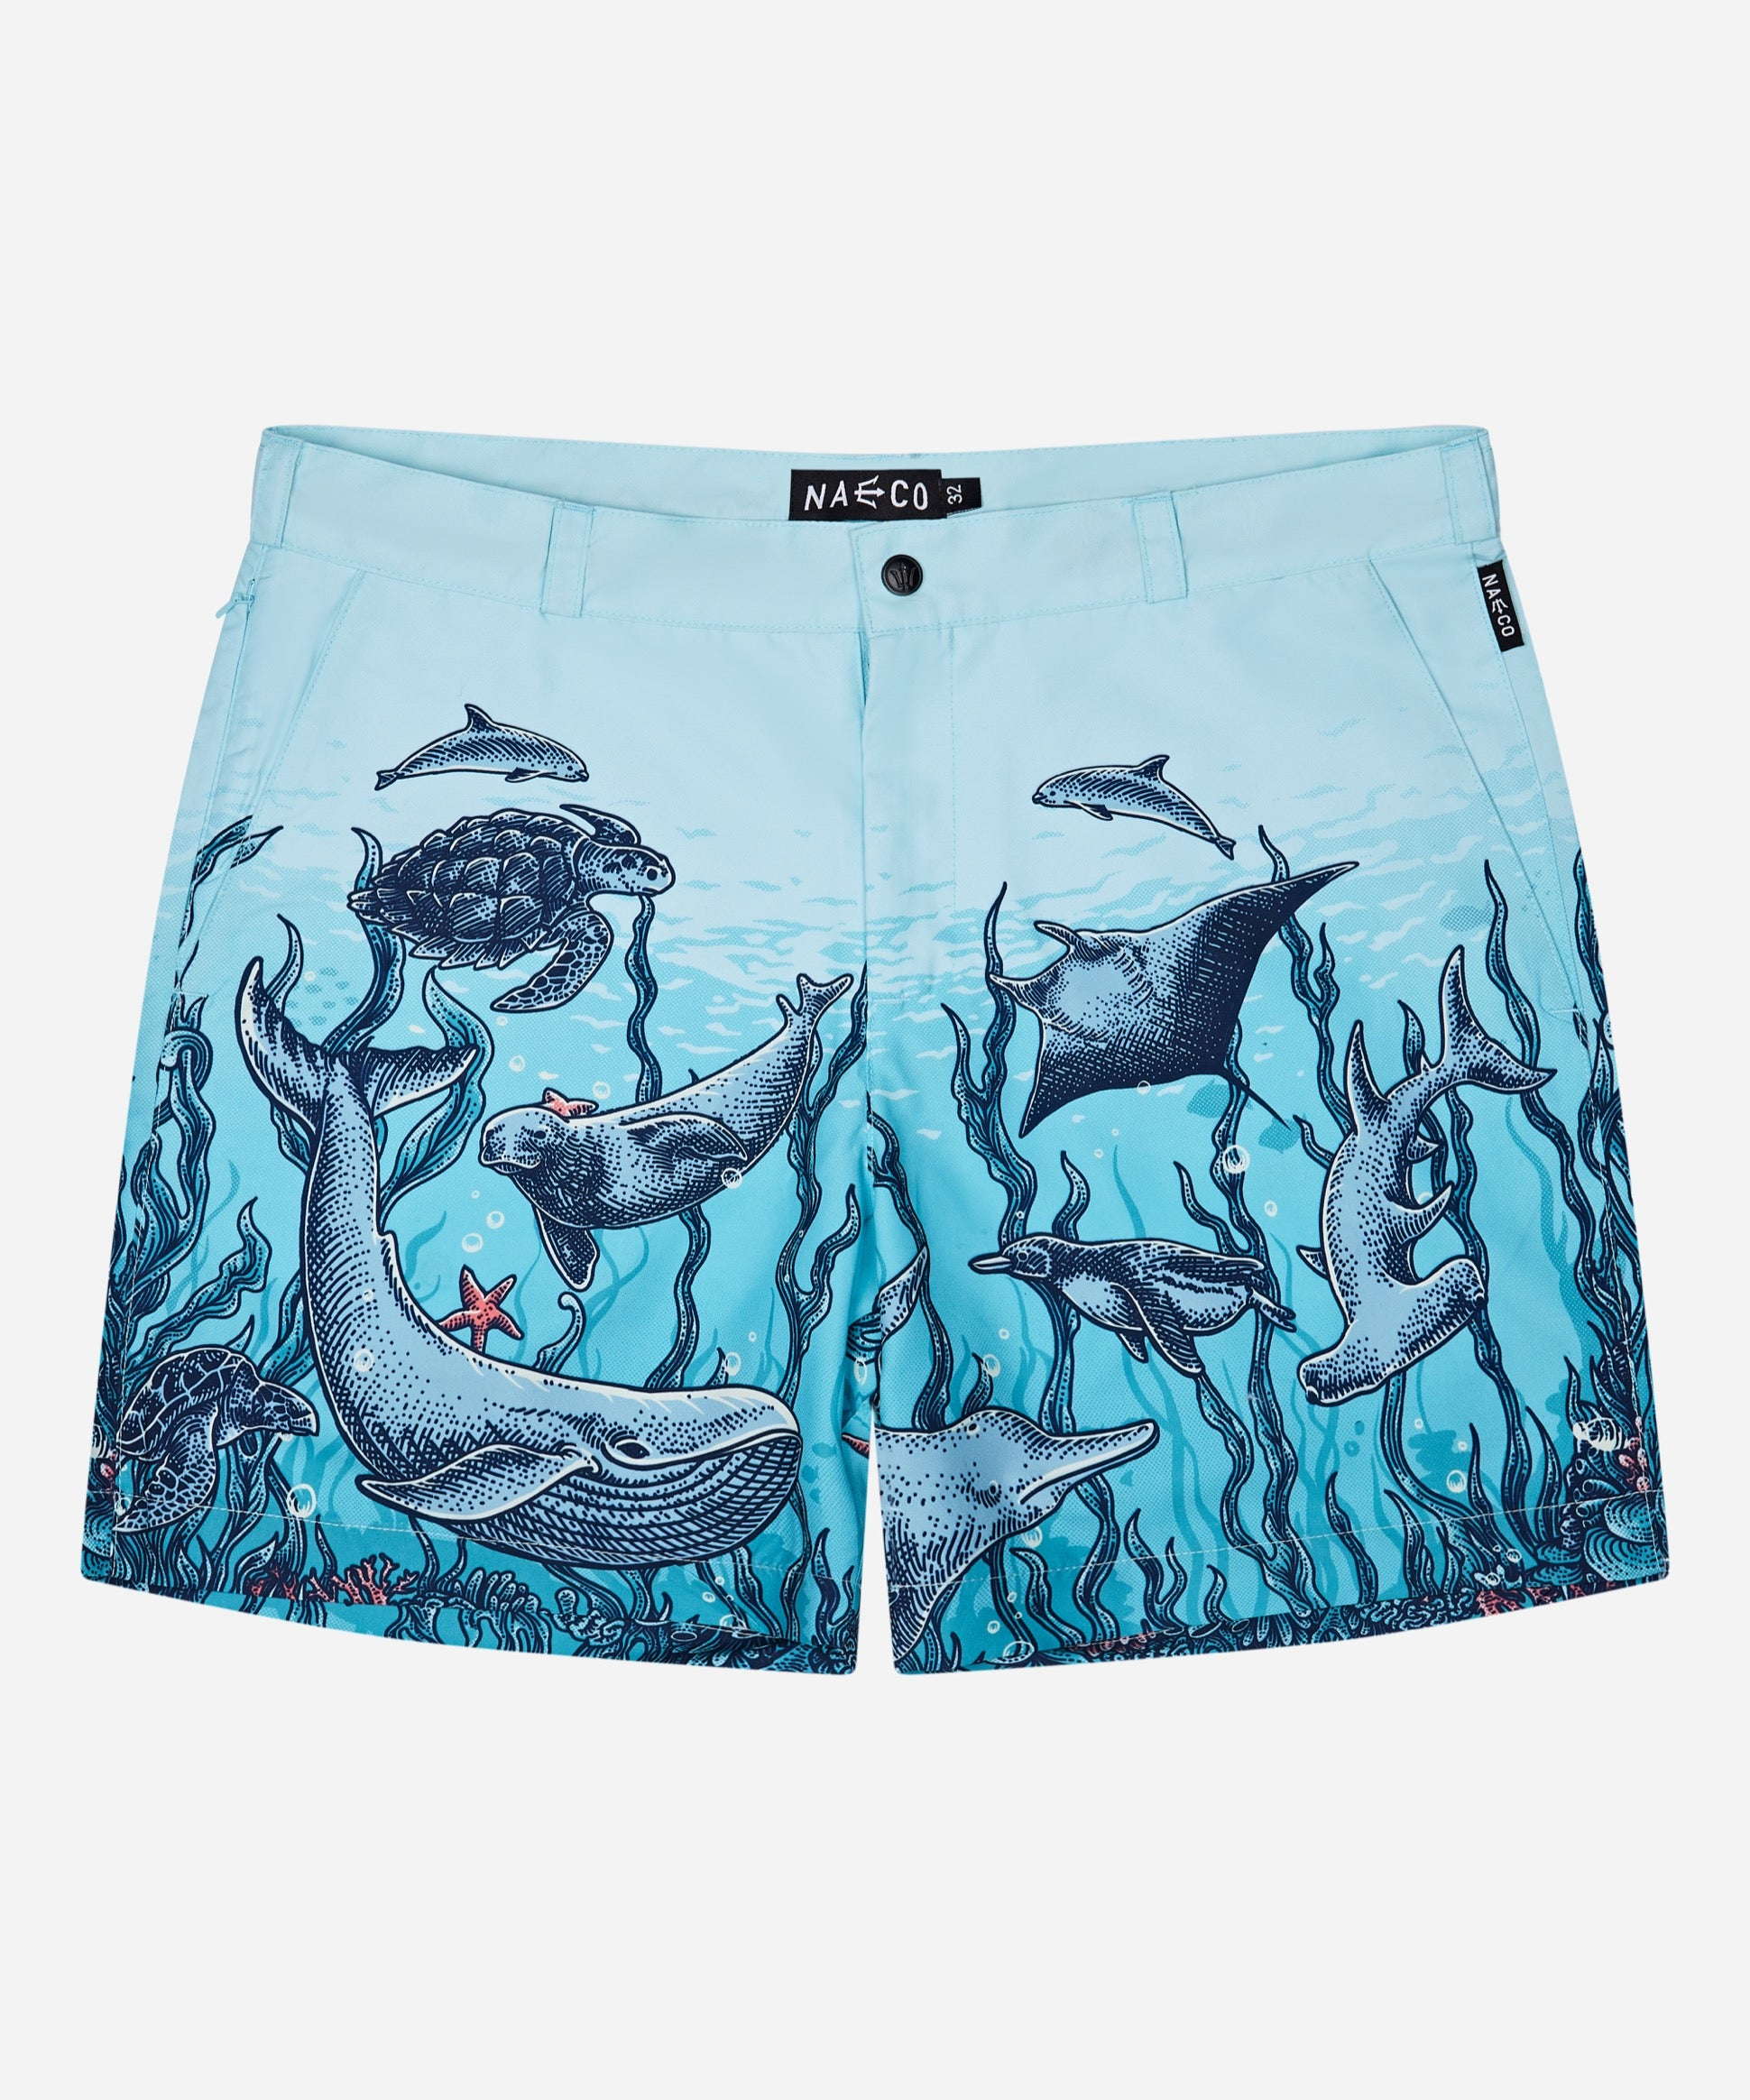 Tailored Original Swim Shorts - Endangered Species Print